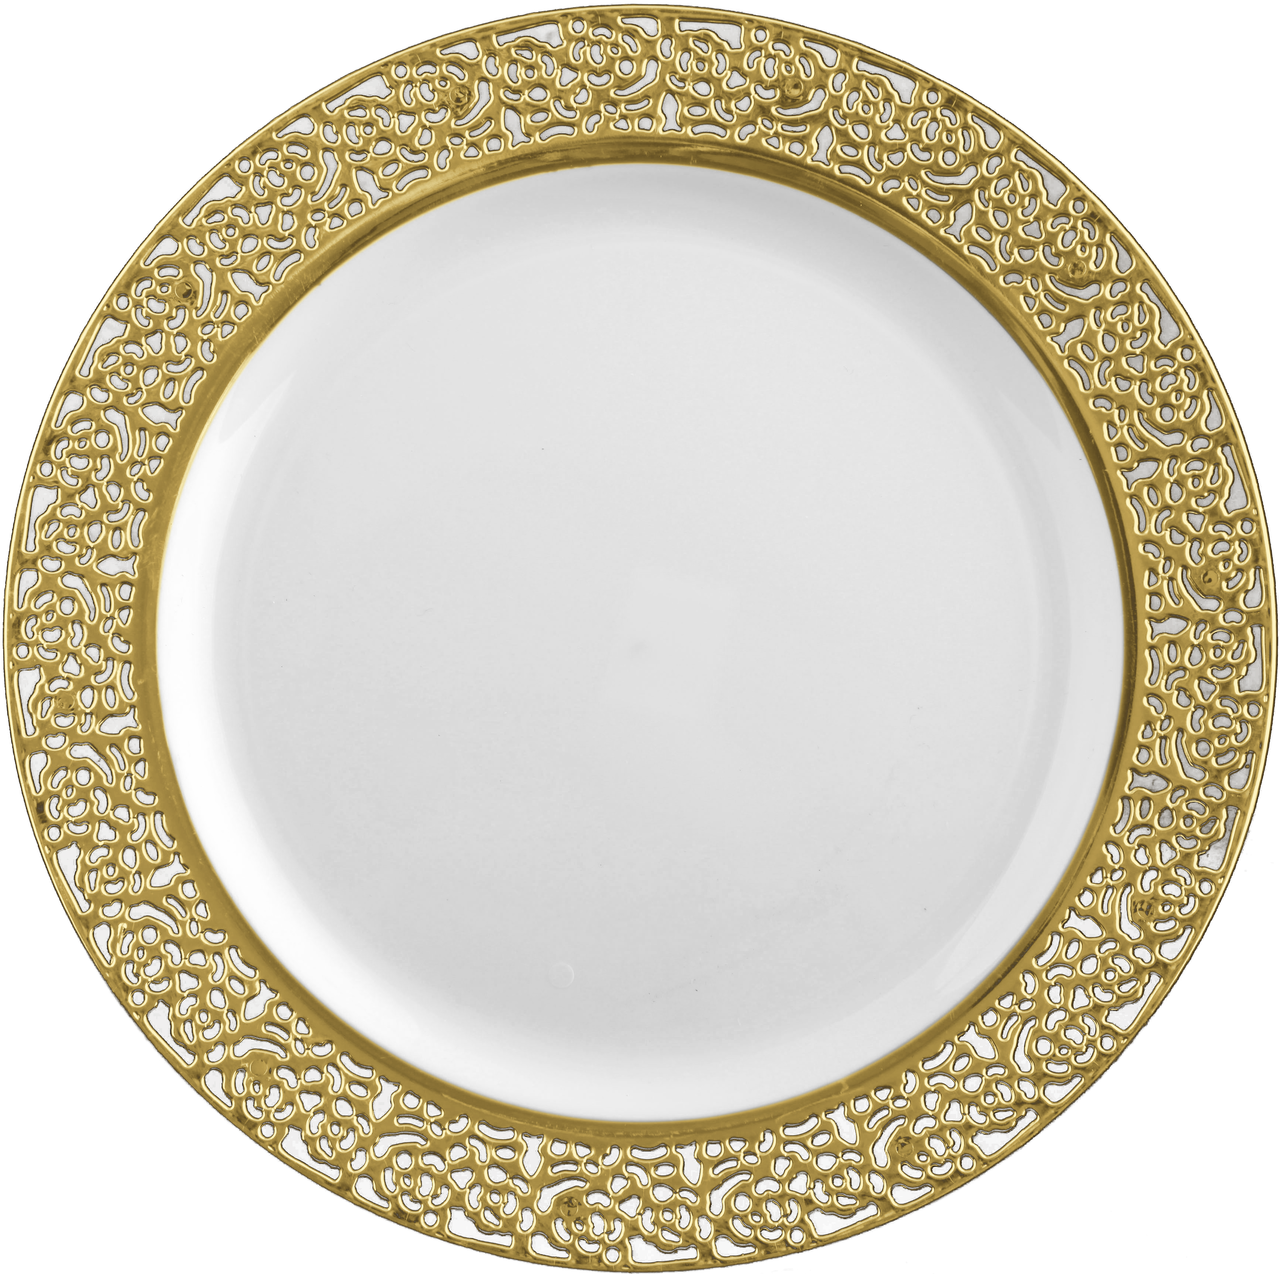 White with Gold Lace Plastic Tableware Package | Corporate events ...